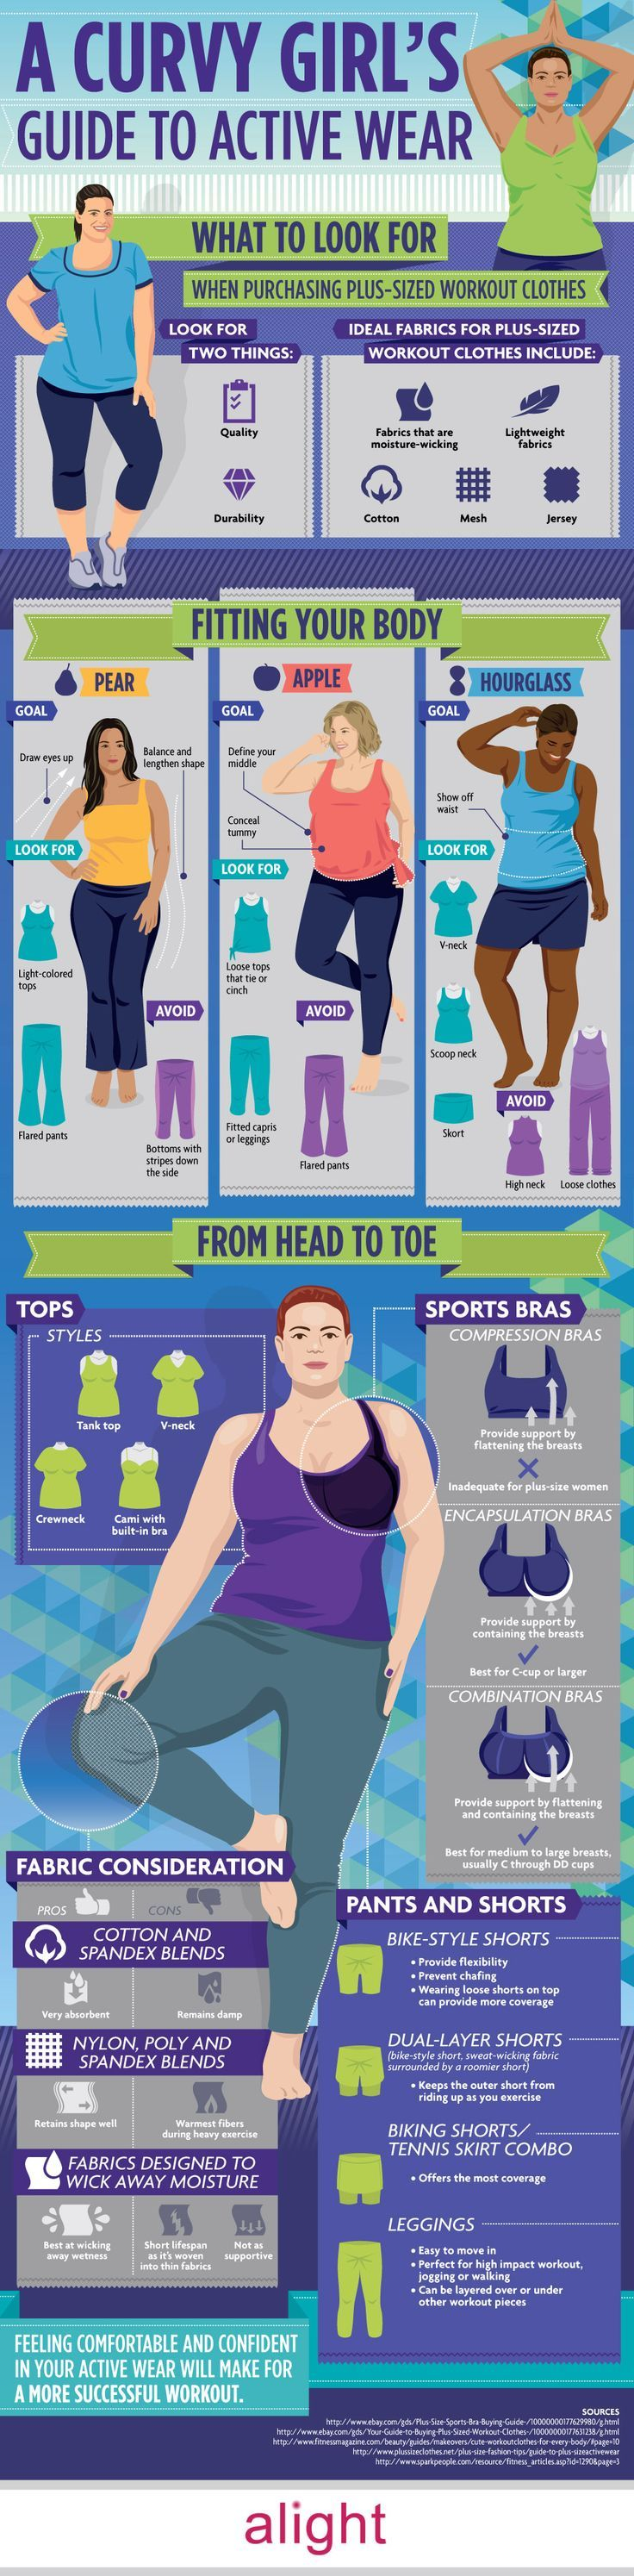 Plus size Girl Guide to Active Wear